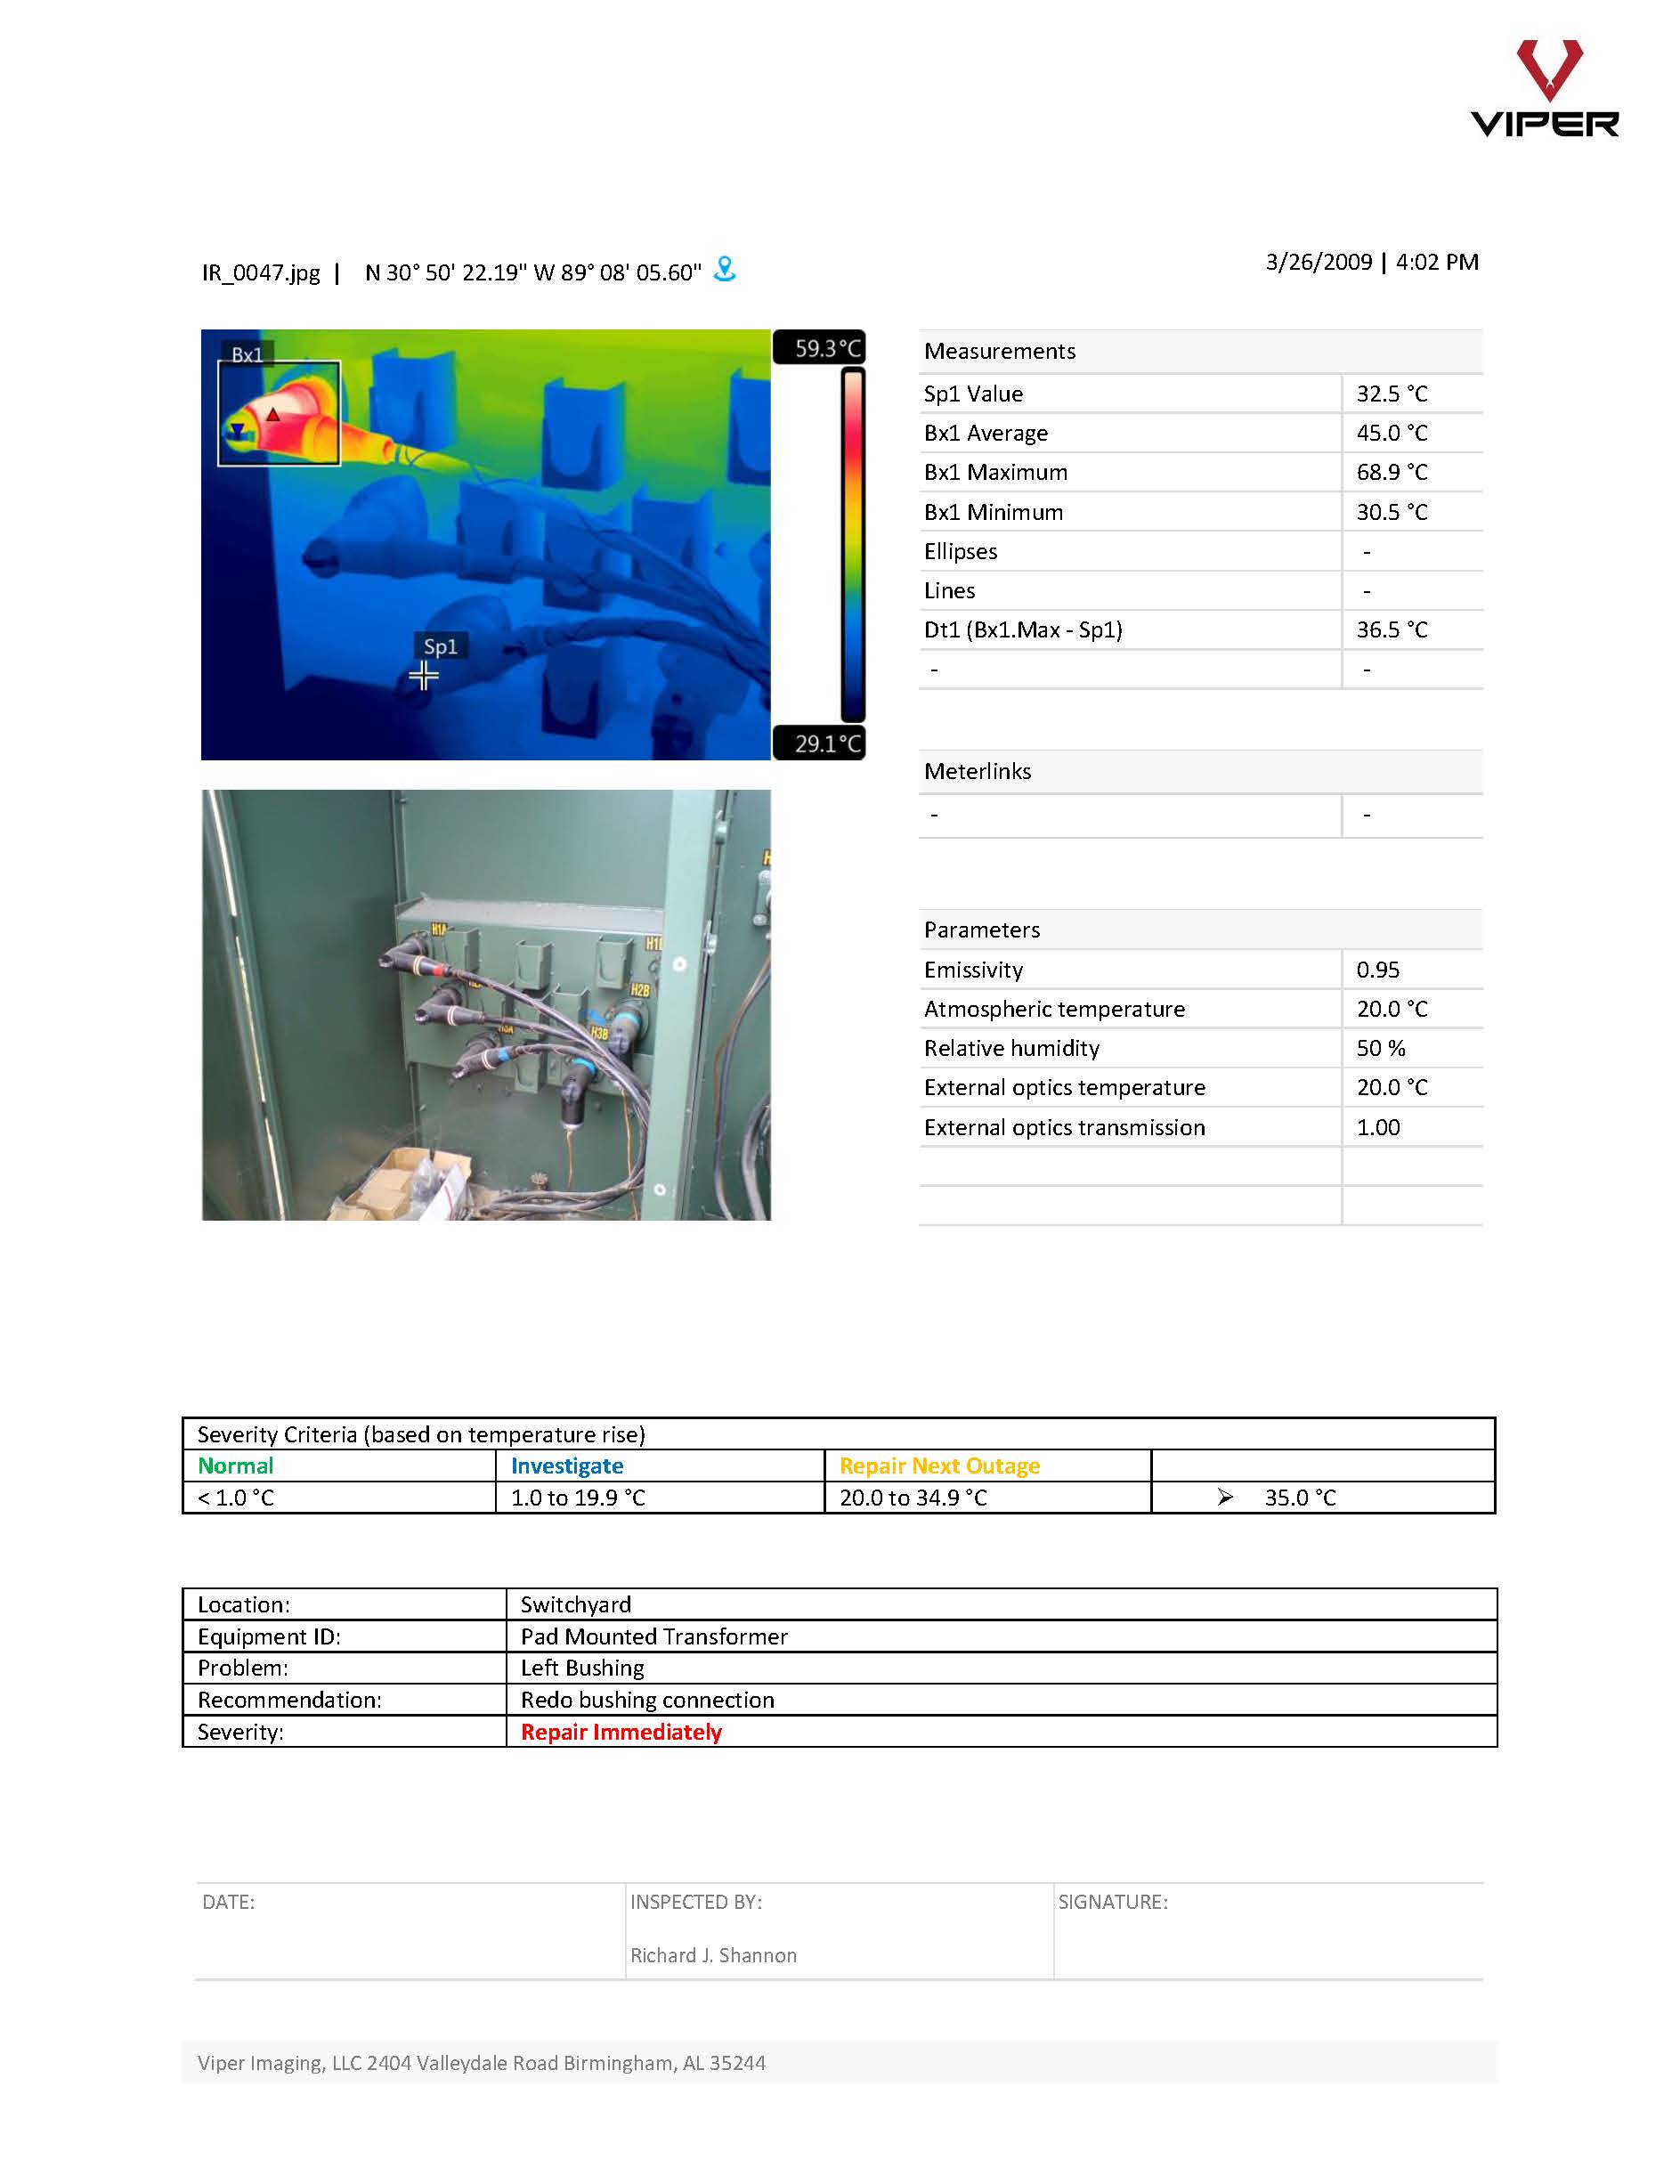 Comprehensive IR Inspection Report - Viper thermographers personally come on-site and perform this inspection. Once complete, a comprehensive report of their findings is provided.Click the button below to view a sample report.